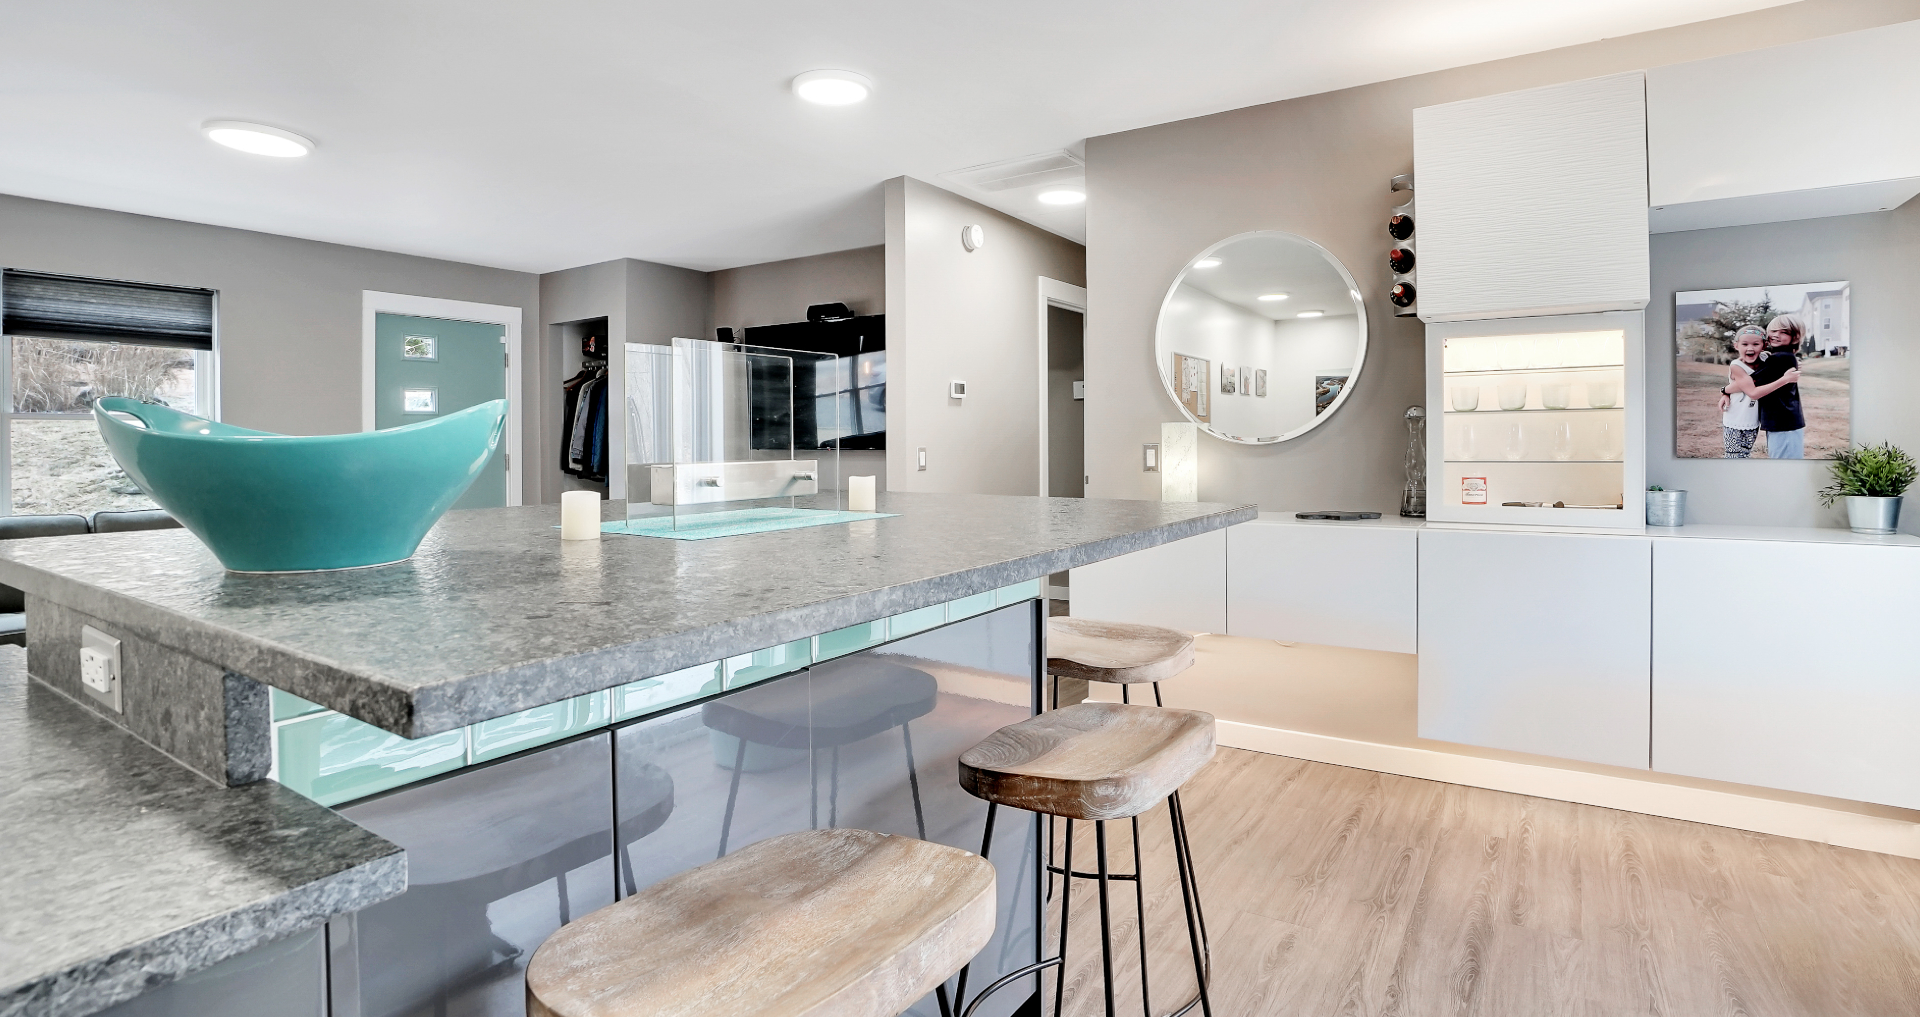 A photo of a modern kitchen with wooden floors